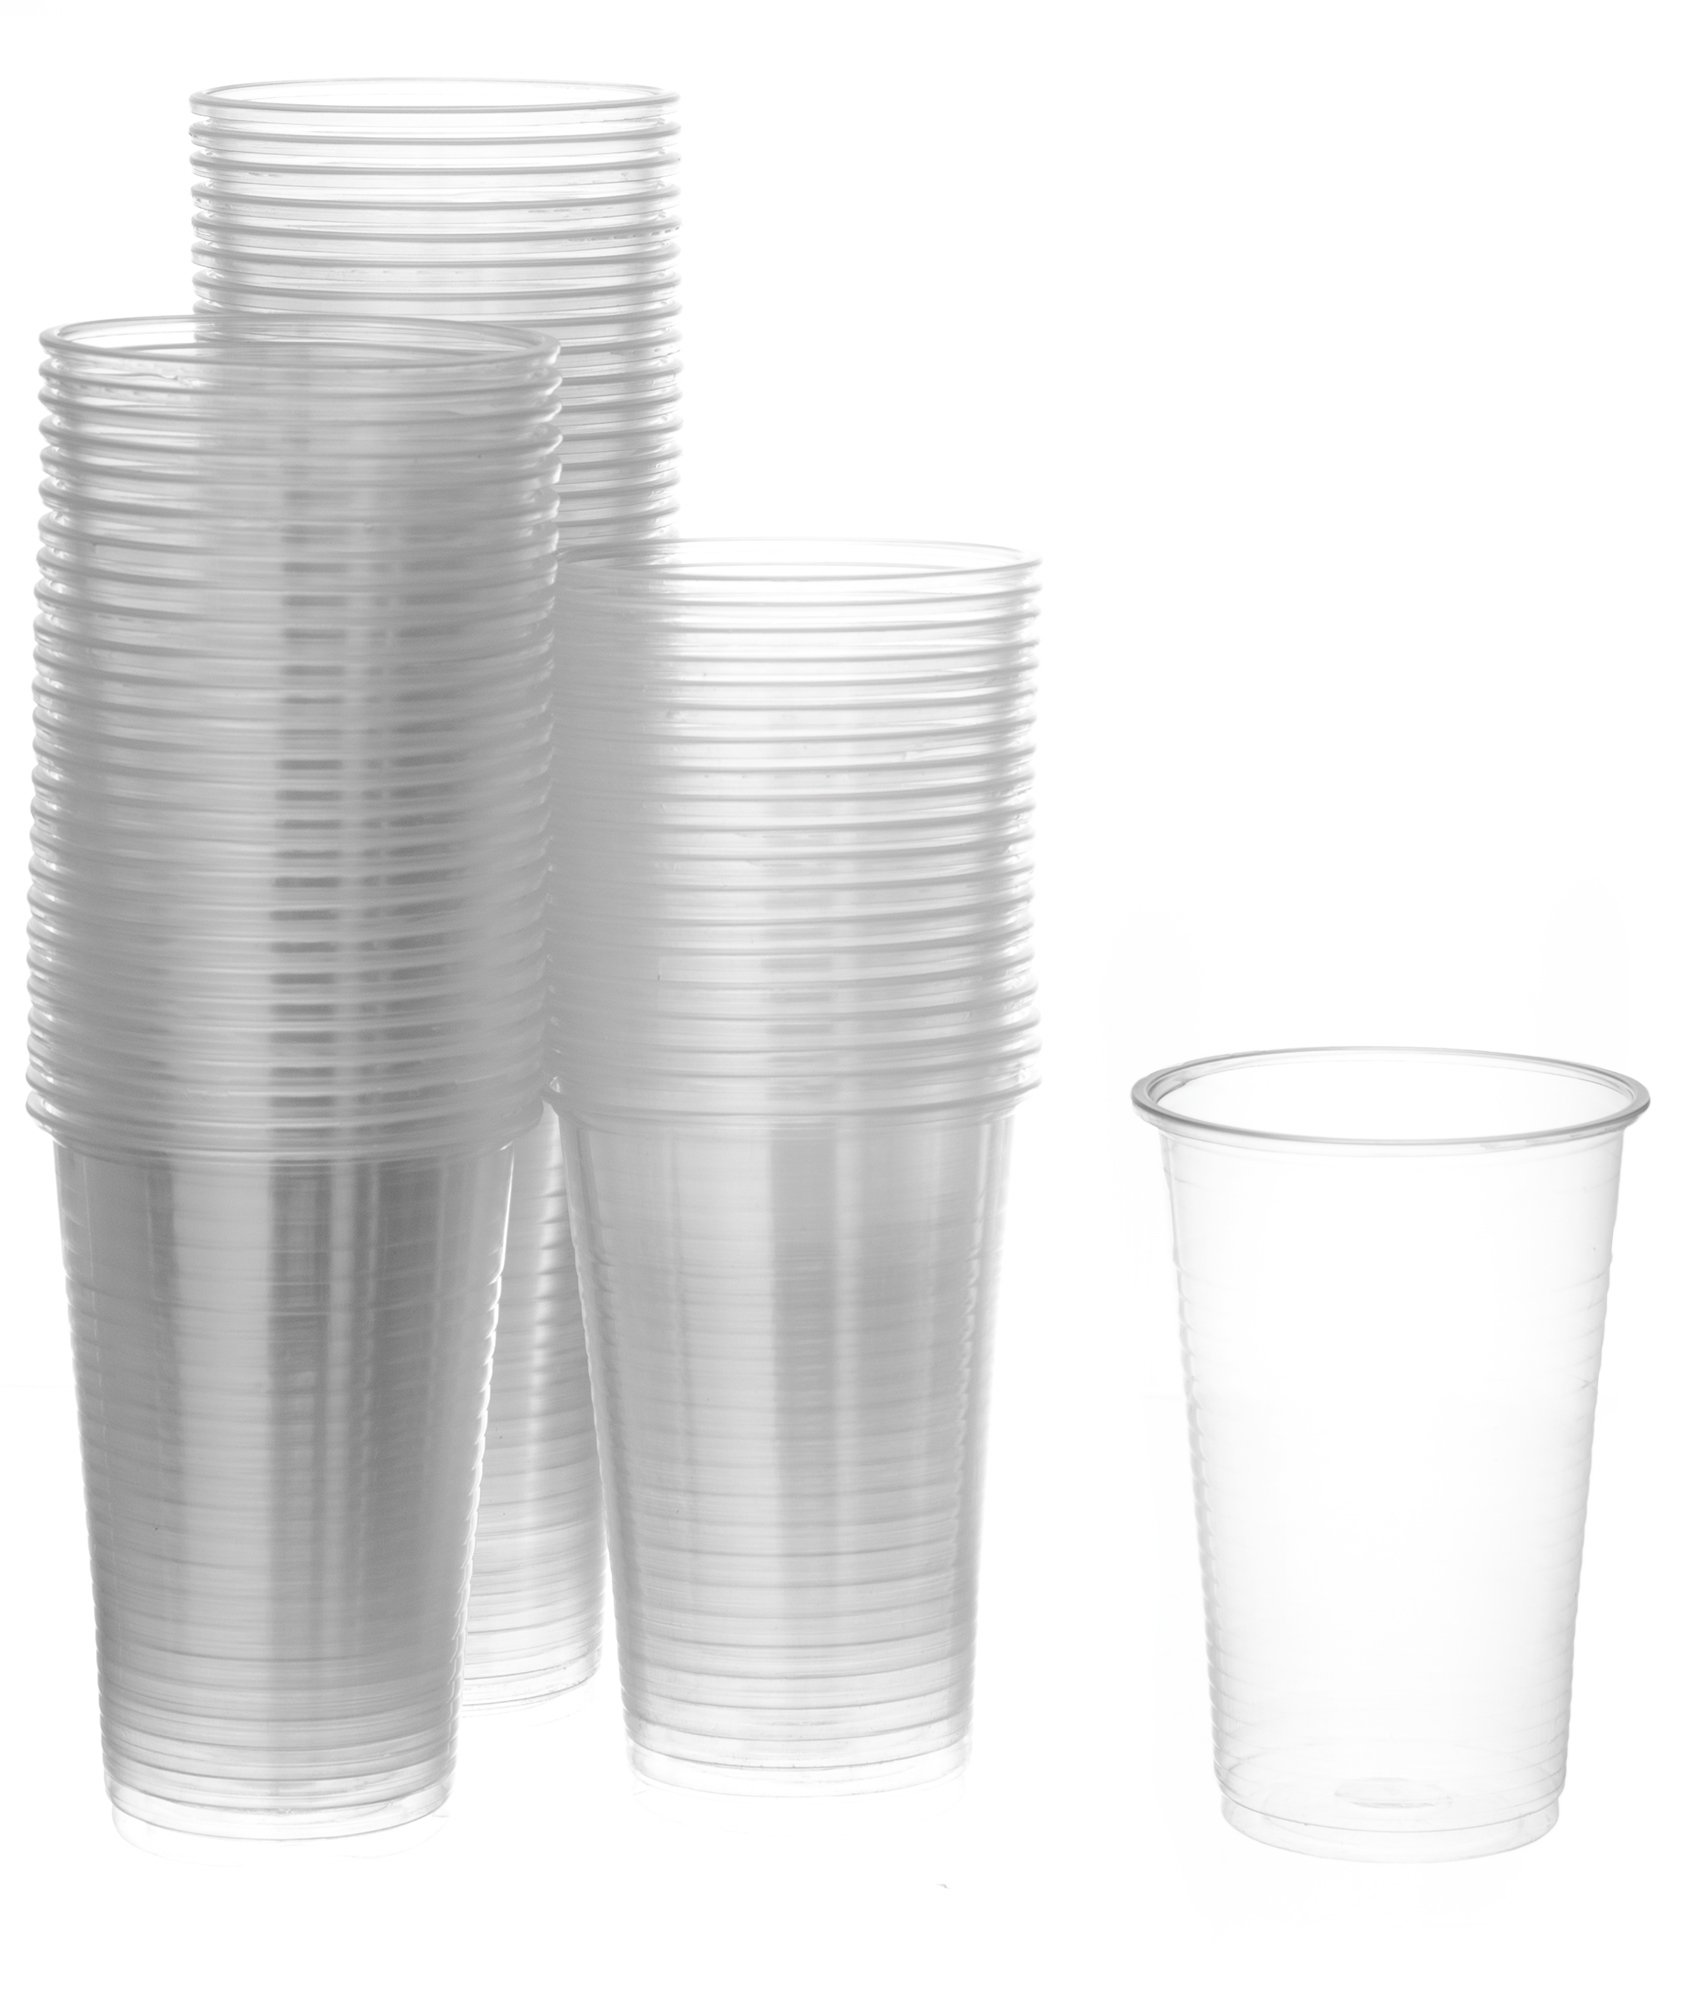 [400 Pack] Settings Large 9 Oz Clear Disposable Plastic Drinking Cups Great For Juice, Water, Soda, Beer, Use At Party, Home, Office, Picnic, BBQ, Or Event, 5 Packs Of 80